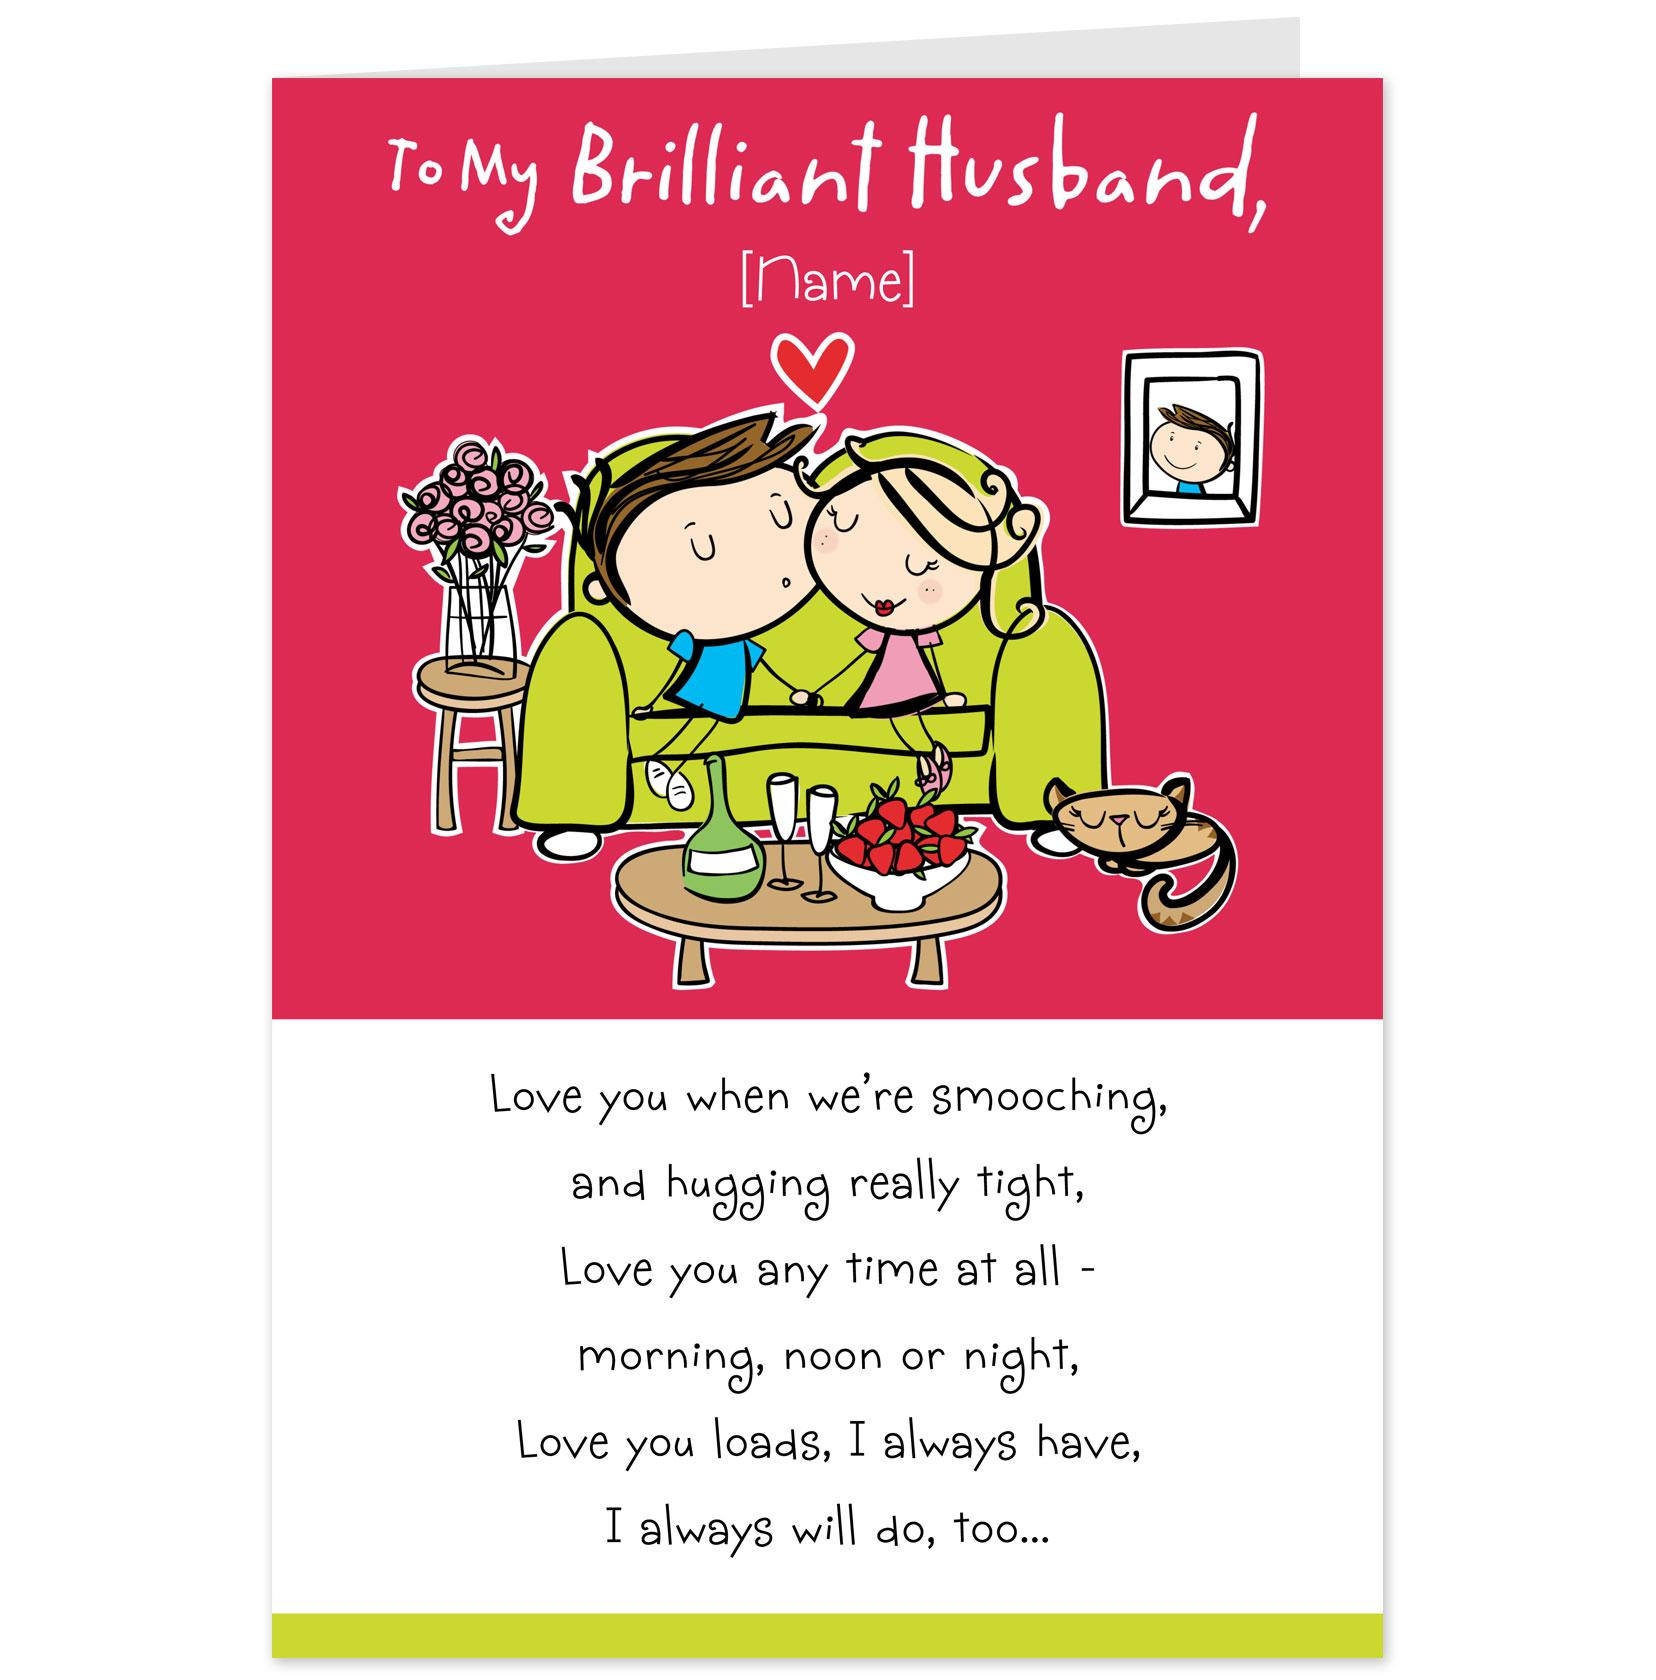 funny birthday wish for husband messages ; funny-husband-birthday-cards-some-best-wishes-and-one-sweet-couple-completing-simple-elegant-stunning-model-looked-so-sweet-also-classic